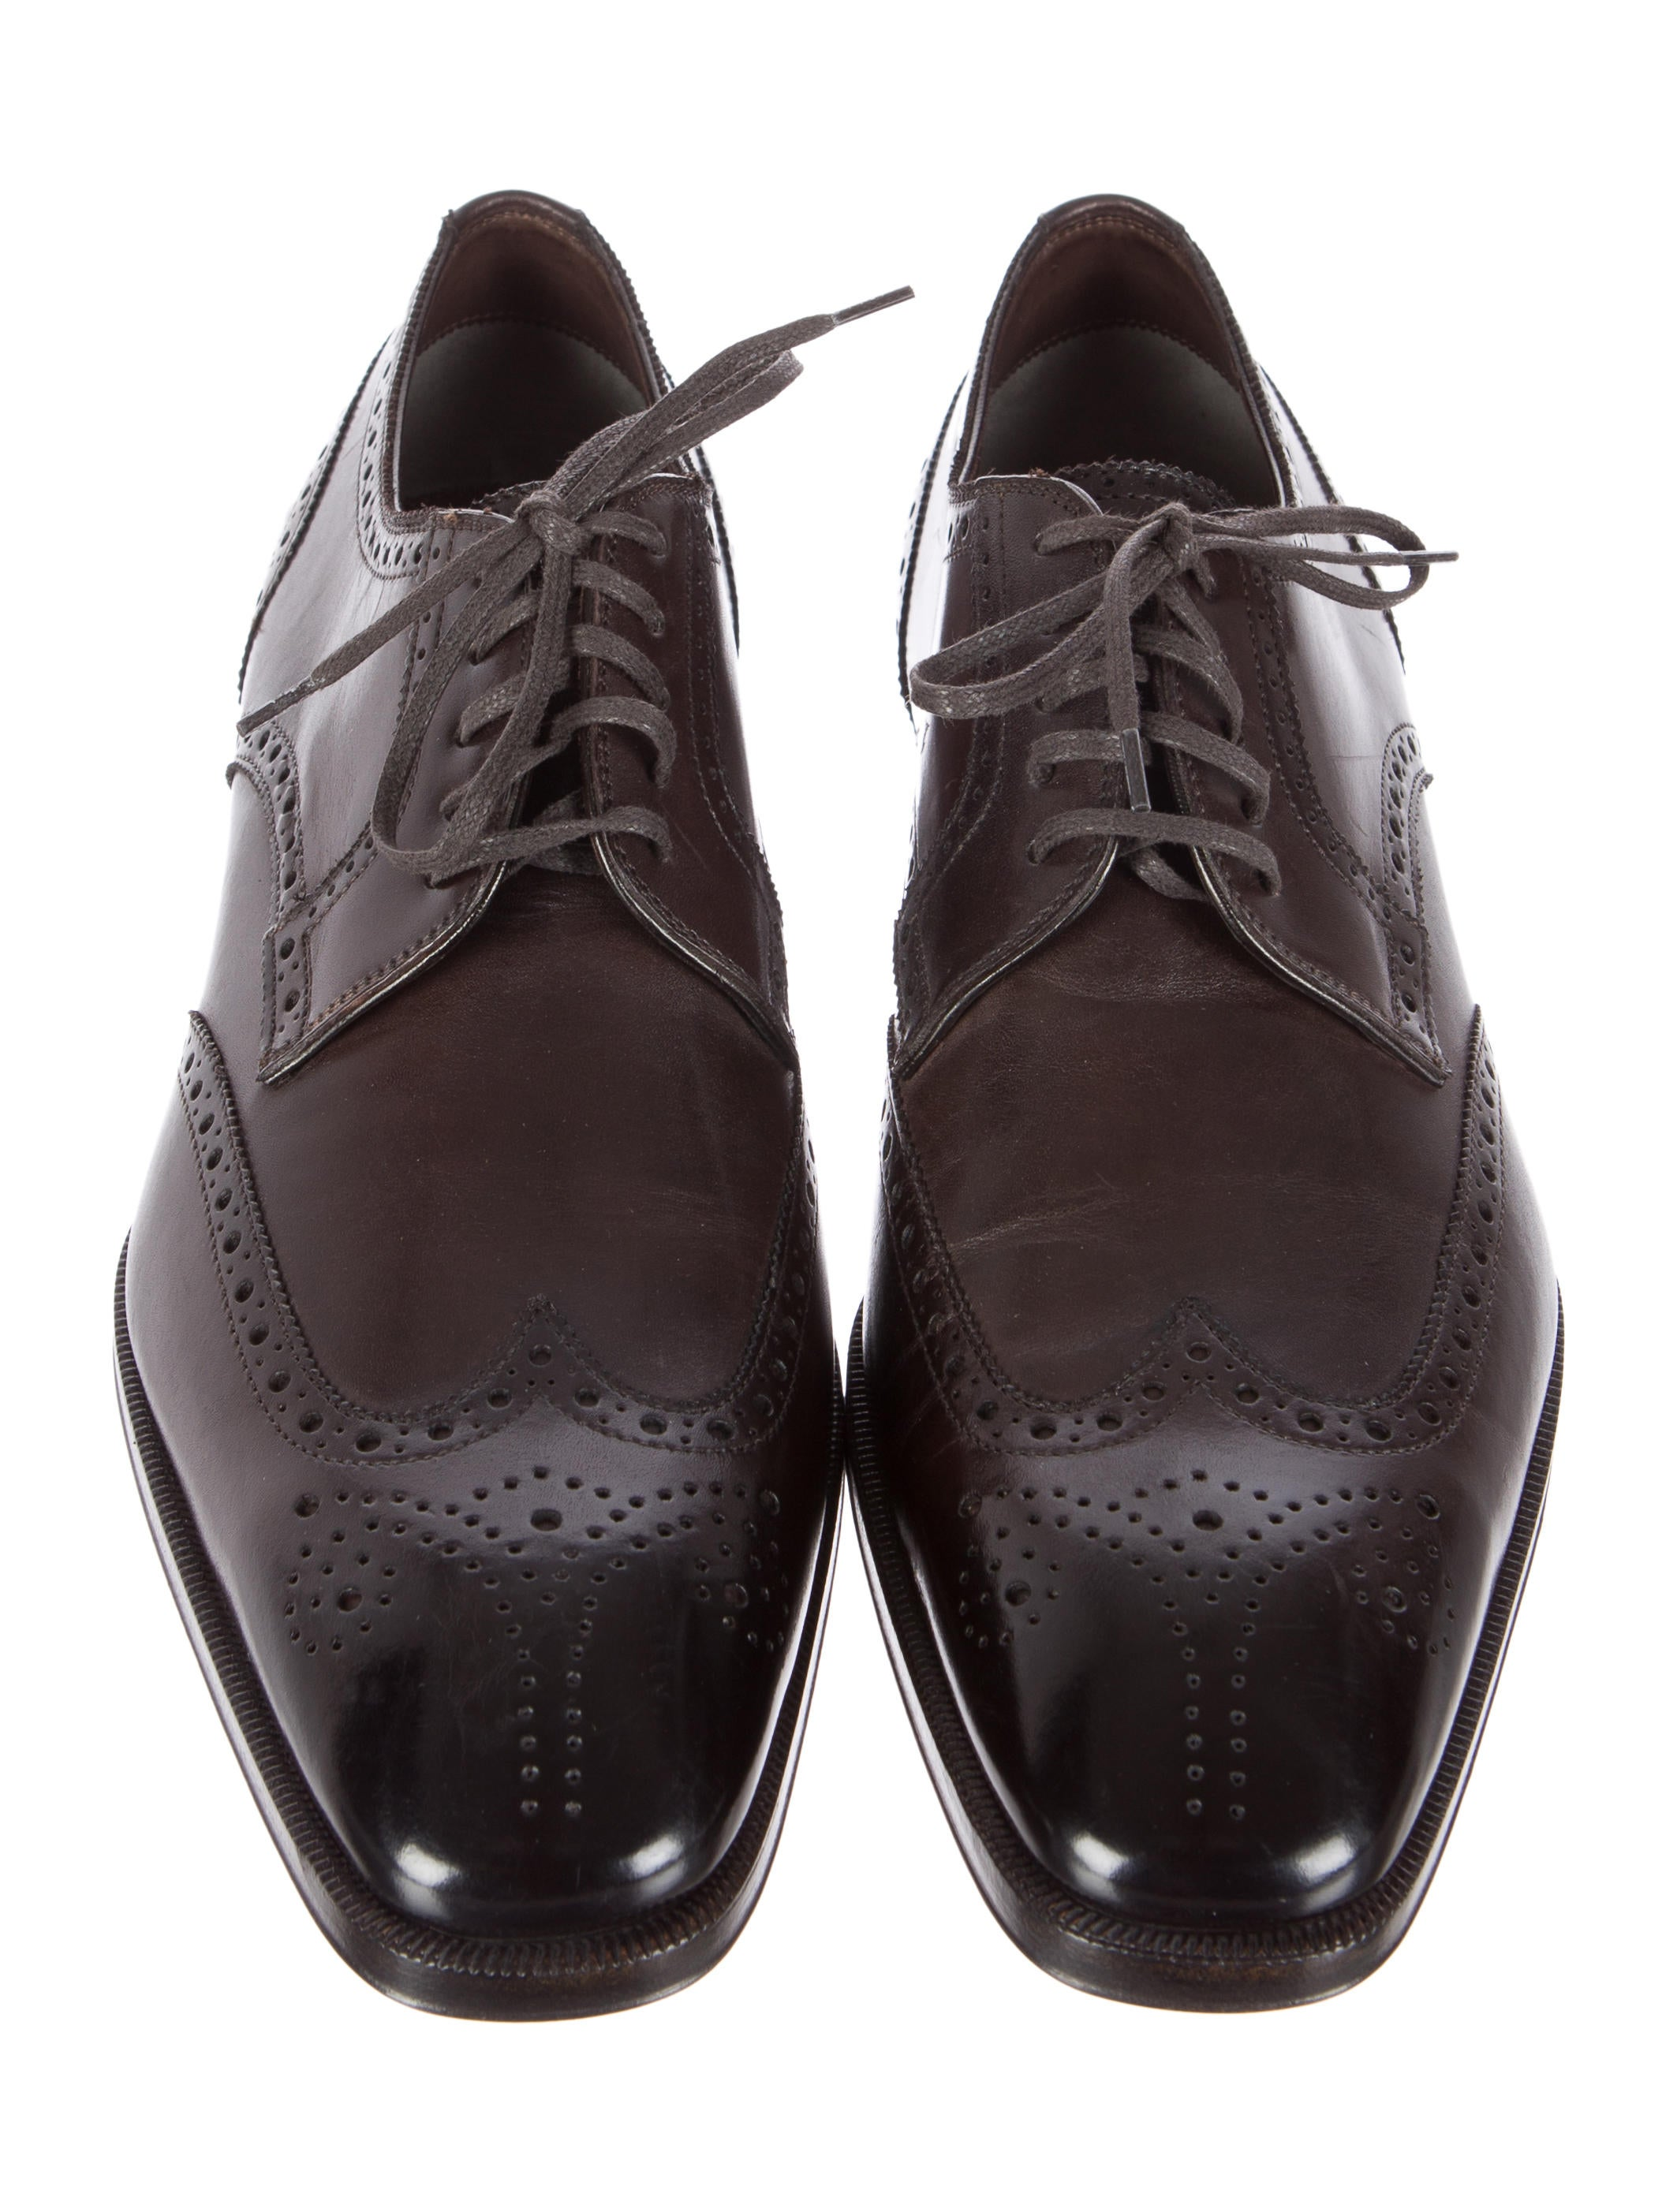 tom ford leather wingtip derby shoes shoes tom25450